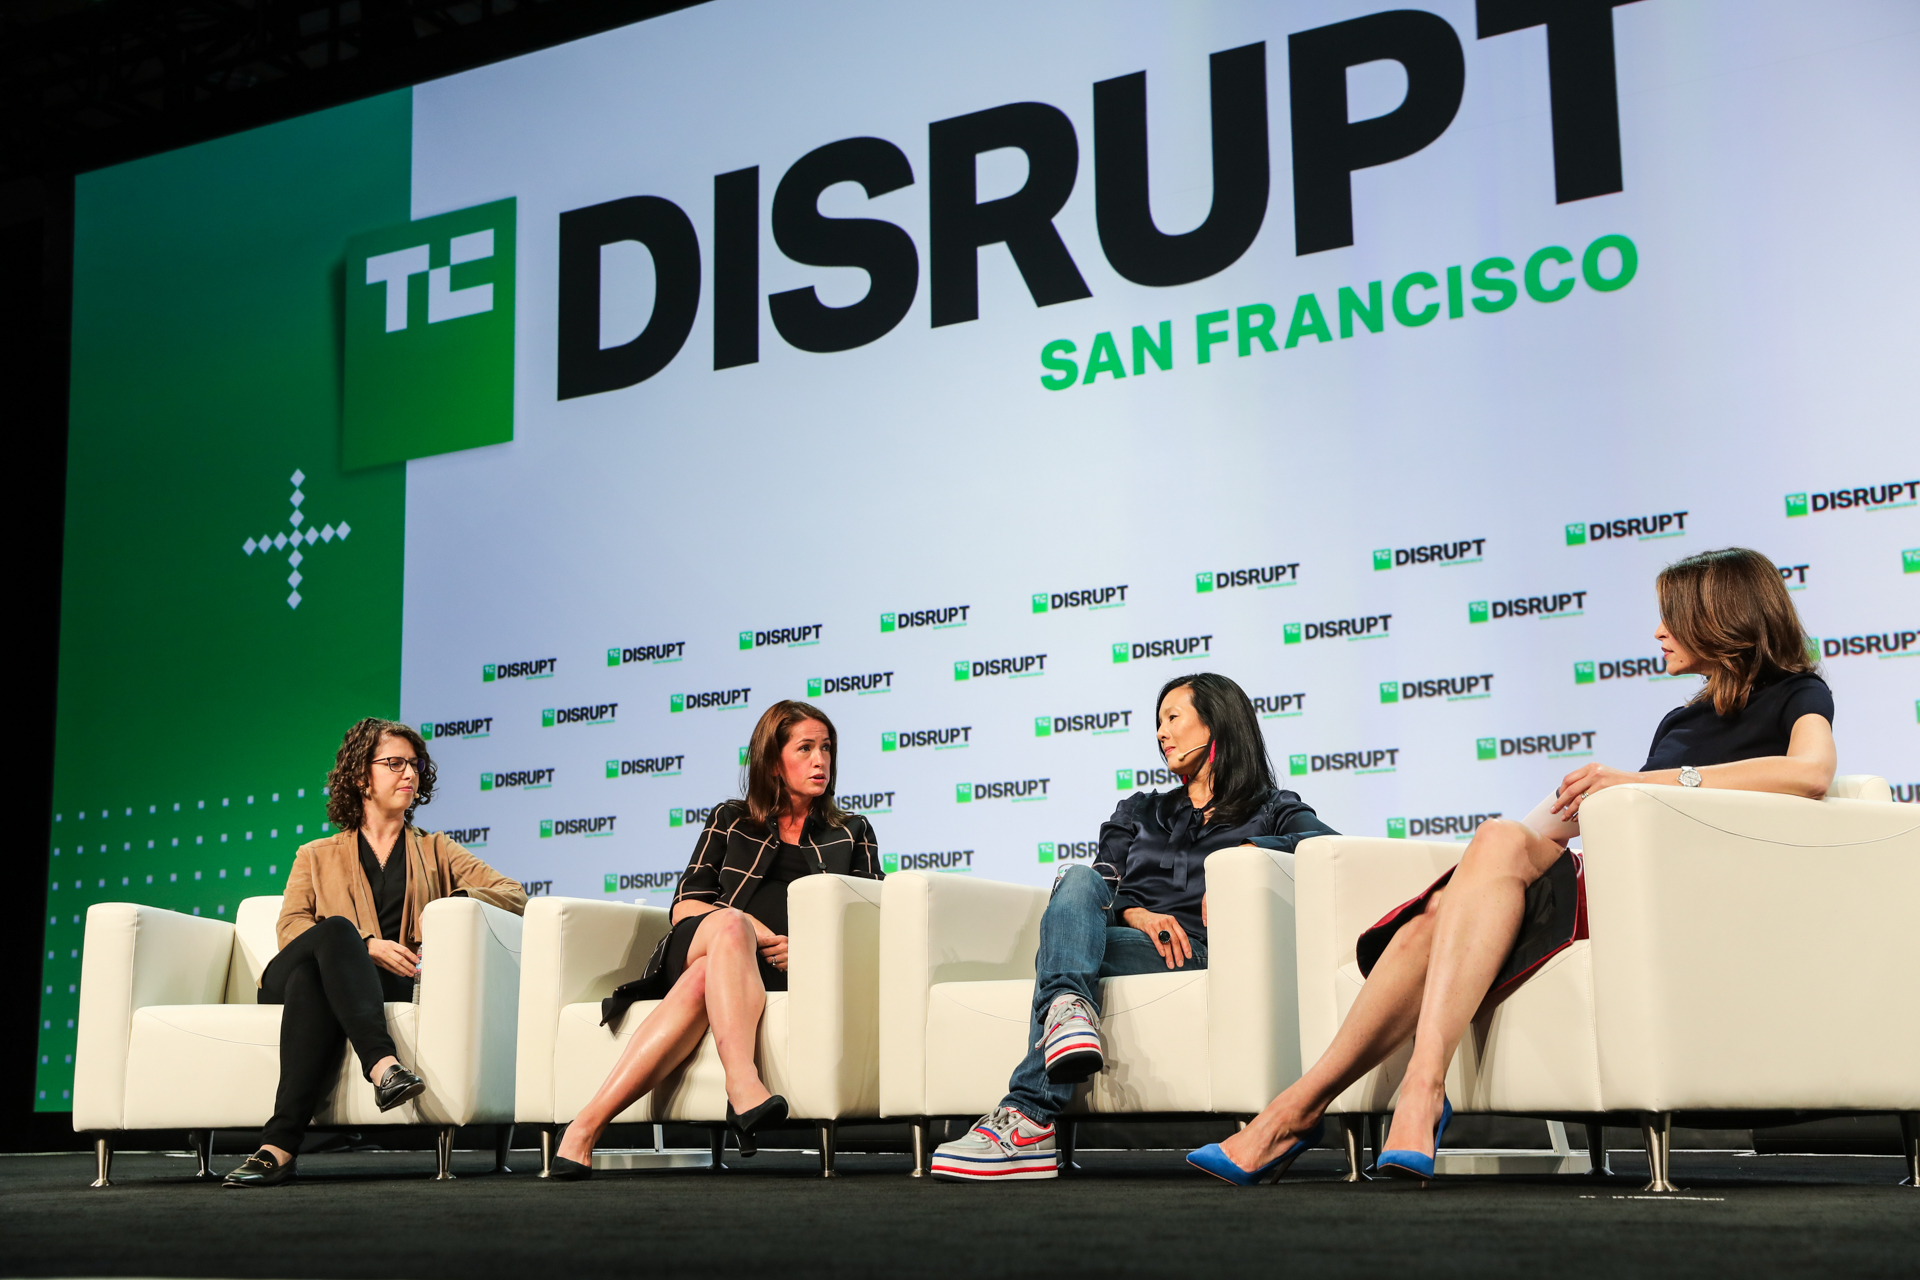 techcrunch.com - Kate Clark - VCs say Silicon Valley isn't the gold mine it used to be